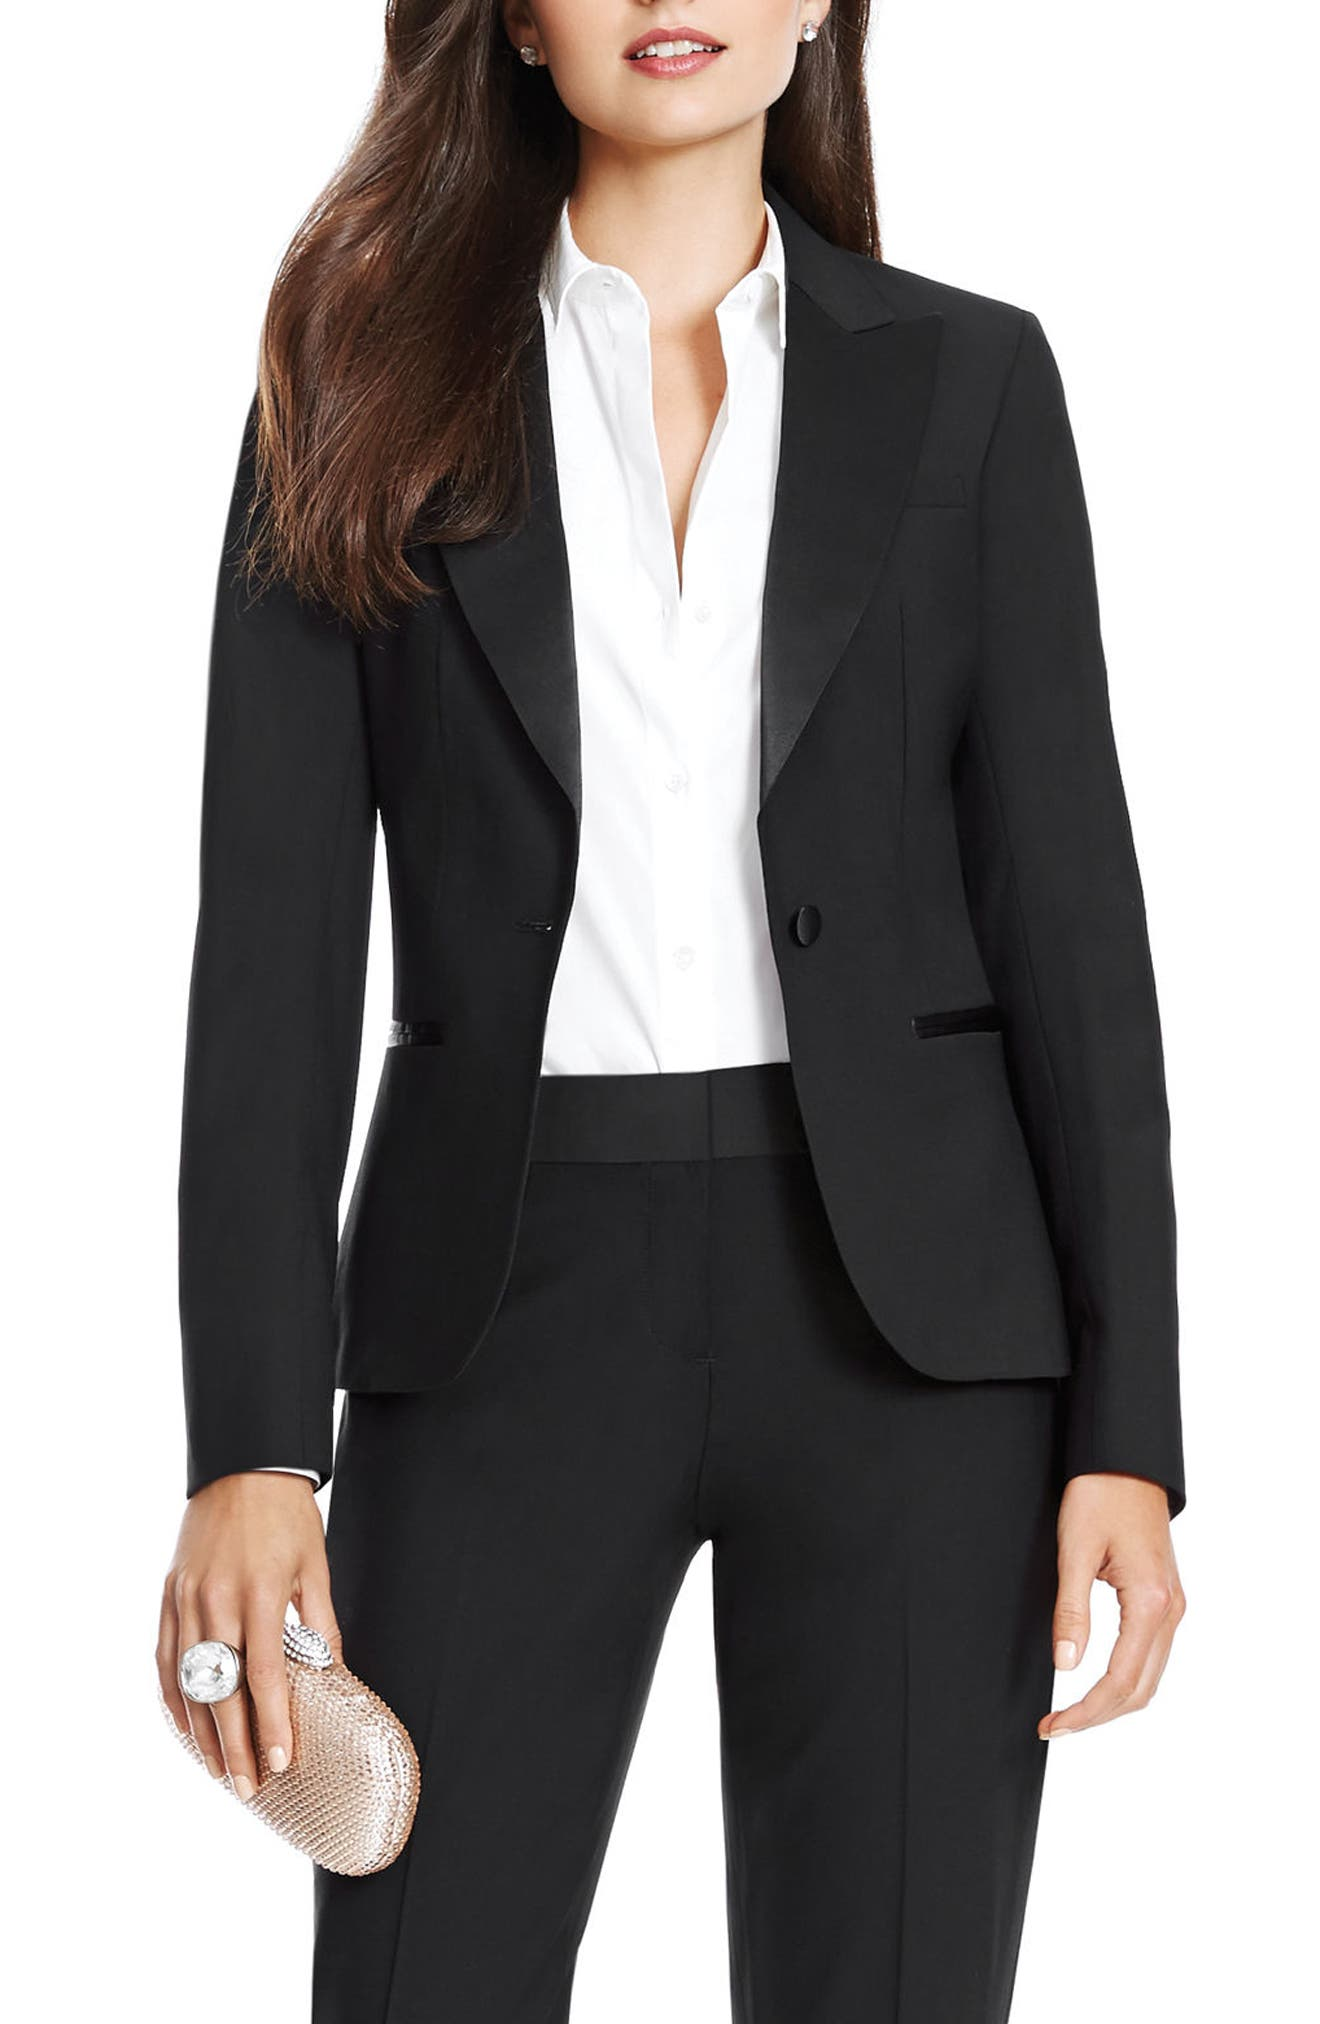 Alternate Image 1 Selected - After Six Stretch Wool Tuxedo Jacket